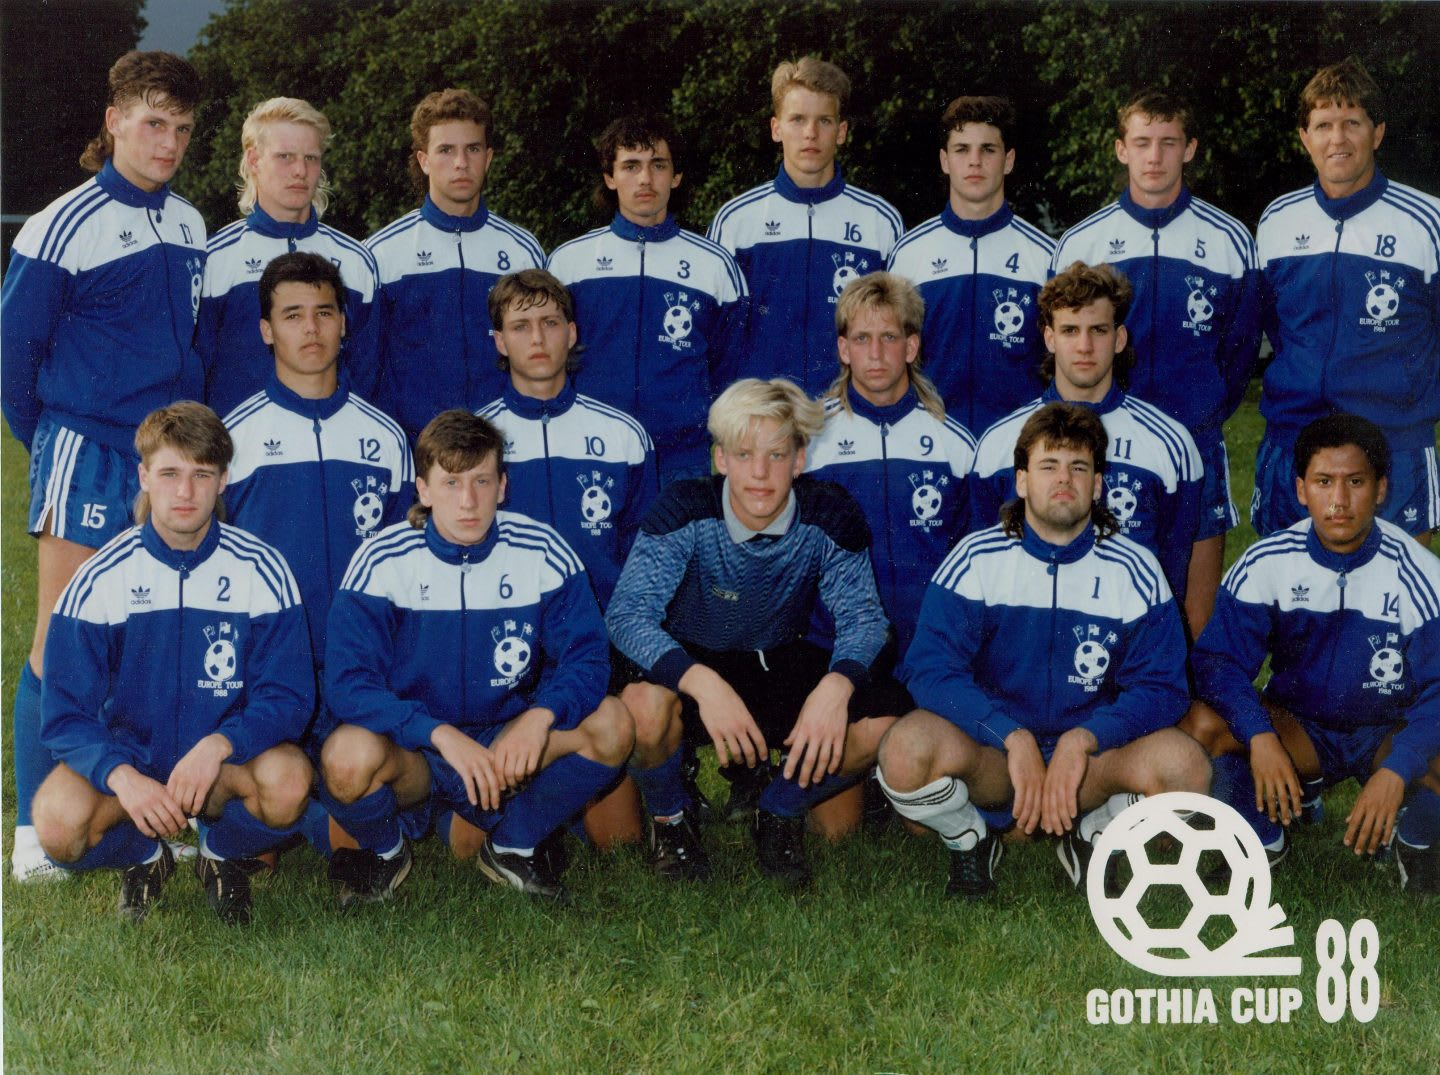 Boys football team standing together in a team photo, men, soccer, team, football, Benson, Sweden, USA, adidas